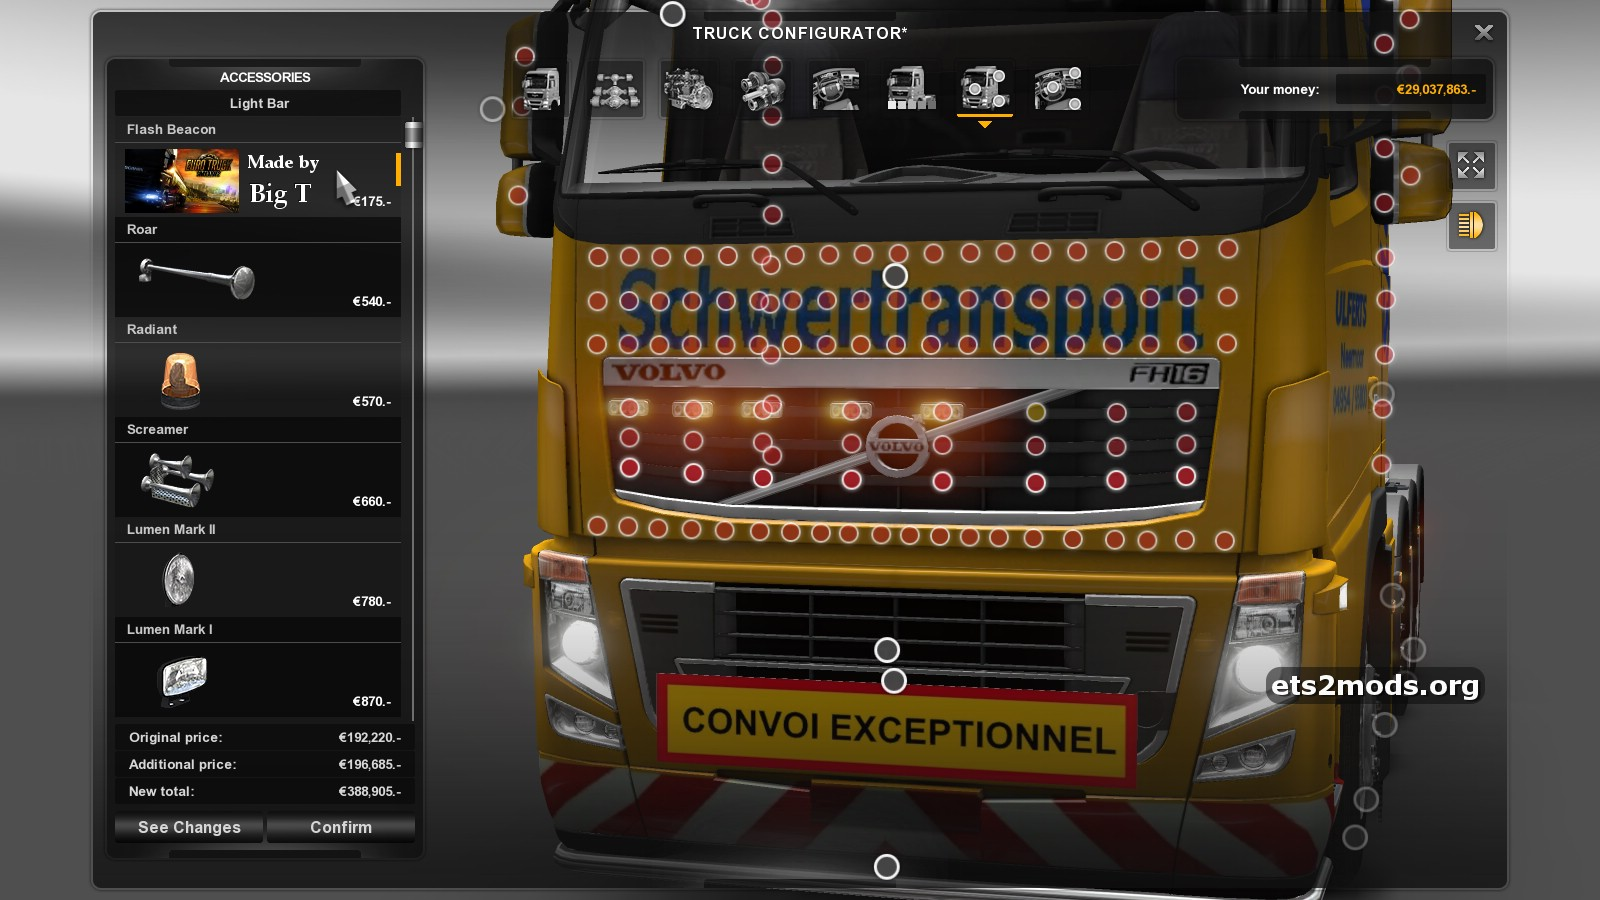 Daf xf tuning mod ets2 euro truck simulator 2 youtube - My Volvo Parts Volvo Cars Info